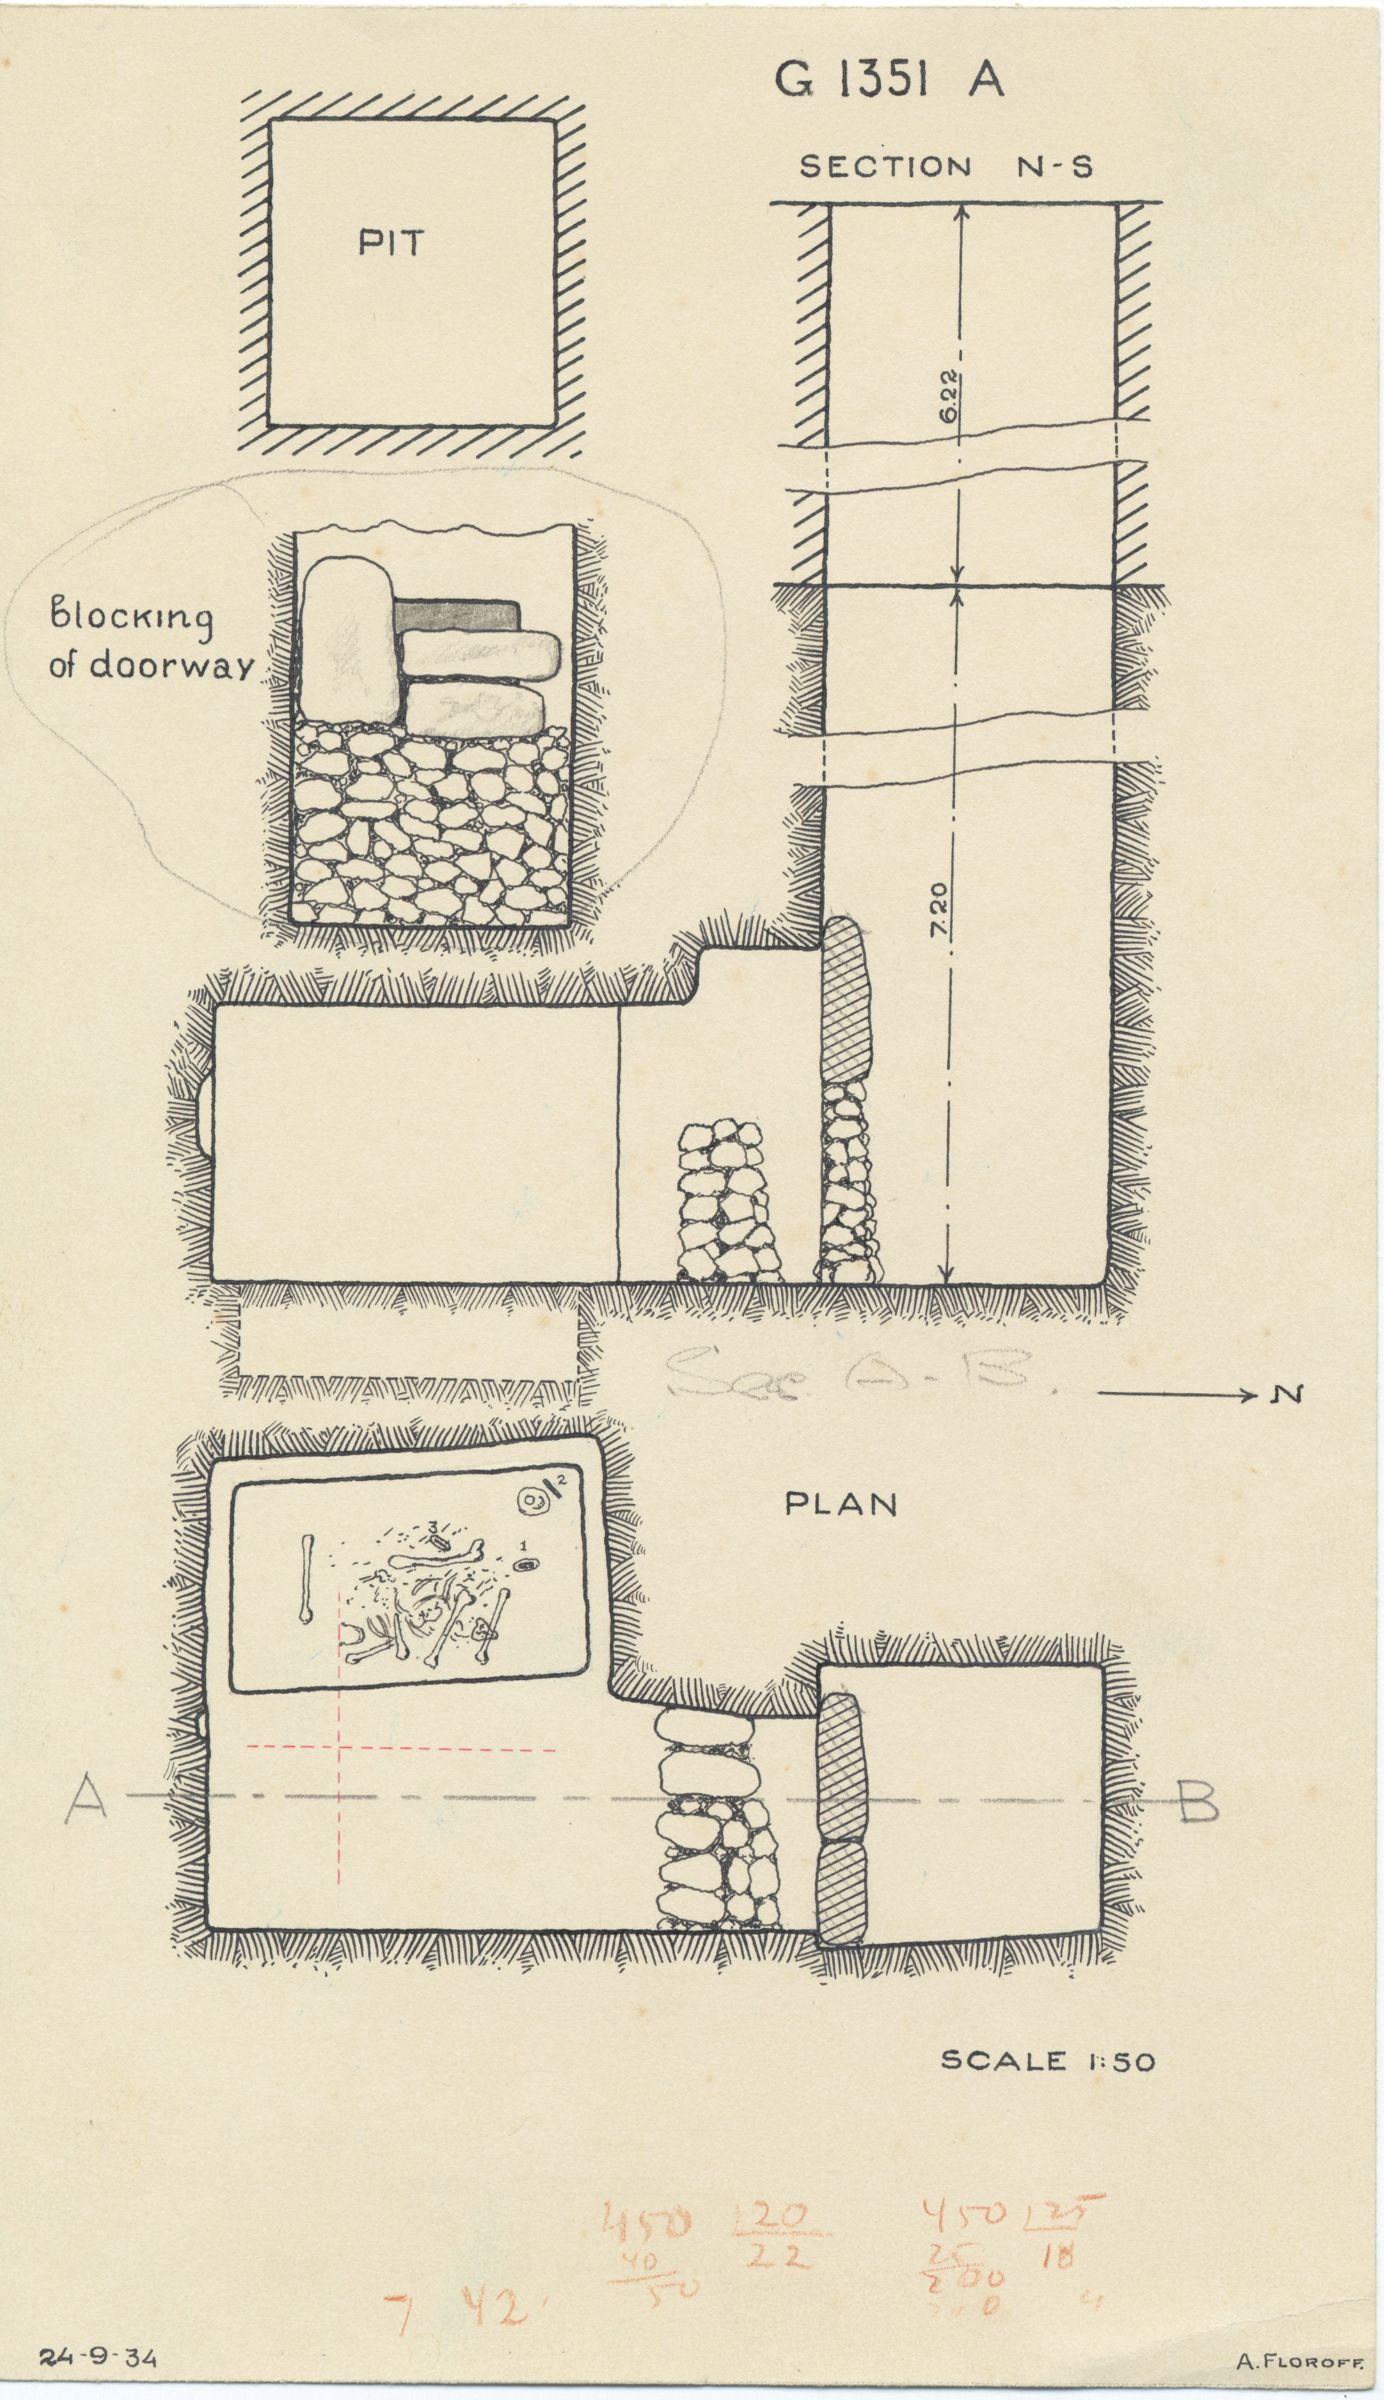 Maps and plans: G 1351, Shaft A